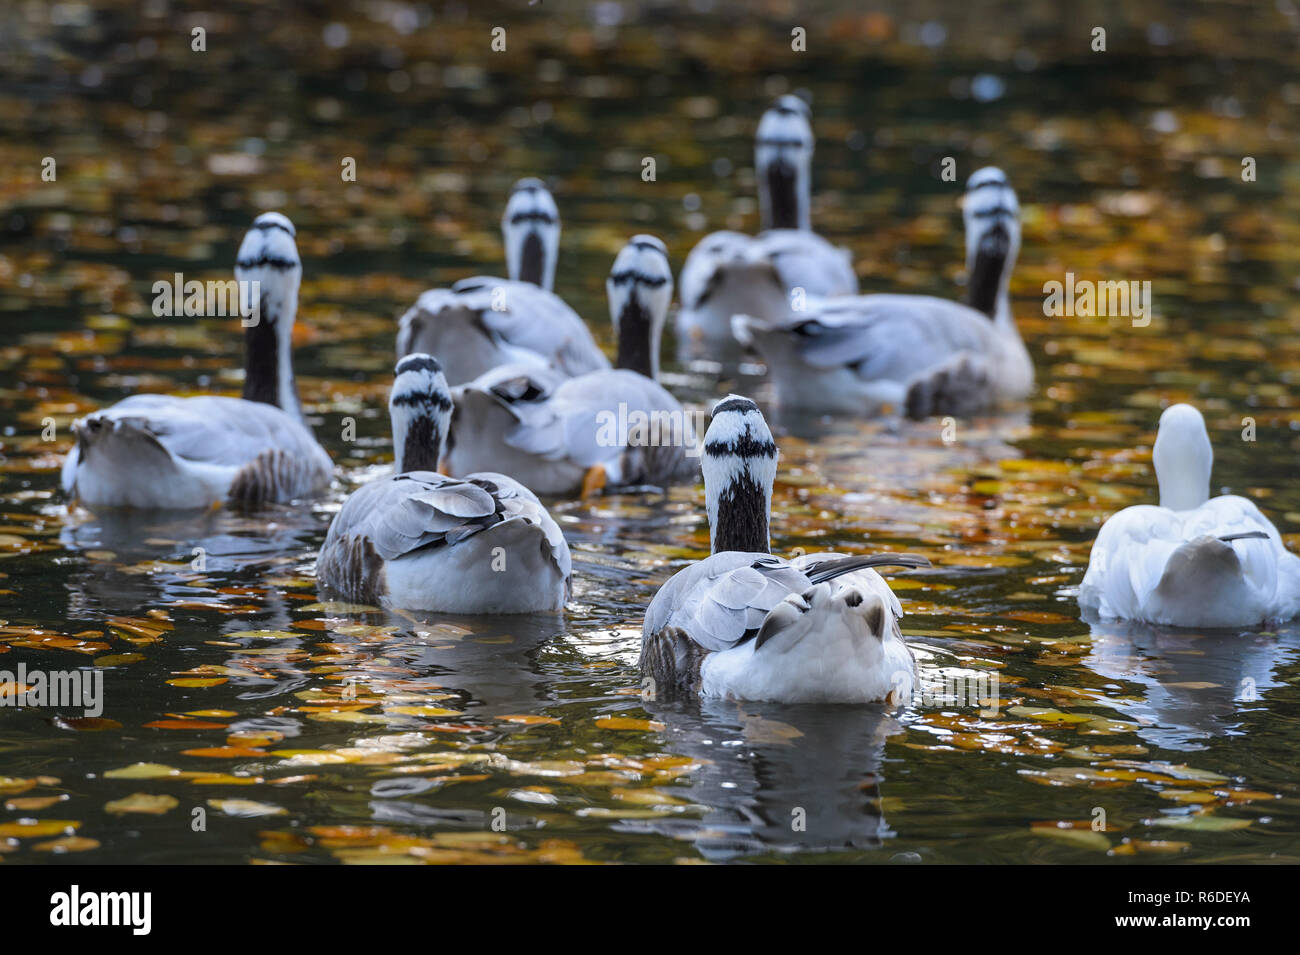 striped geese swim in the water Stock Photo